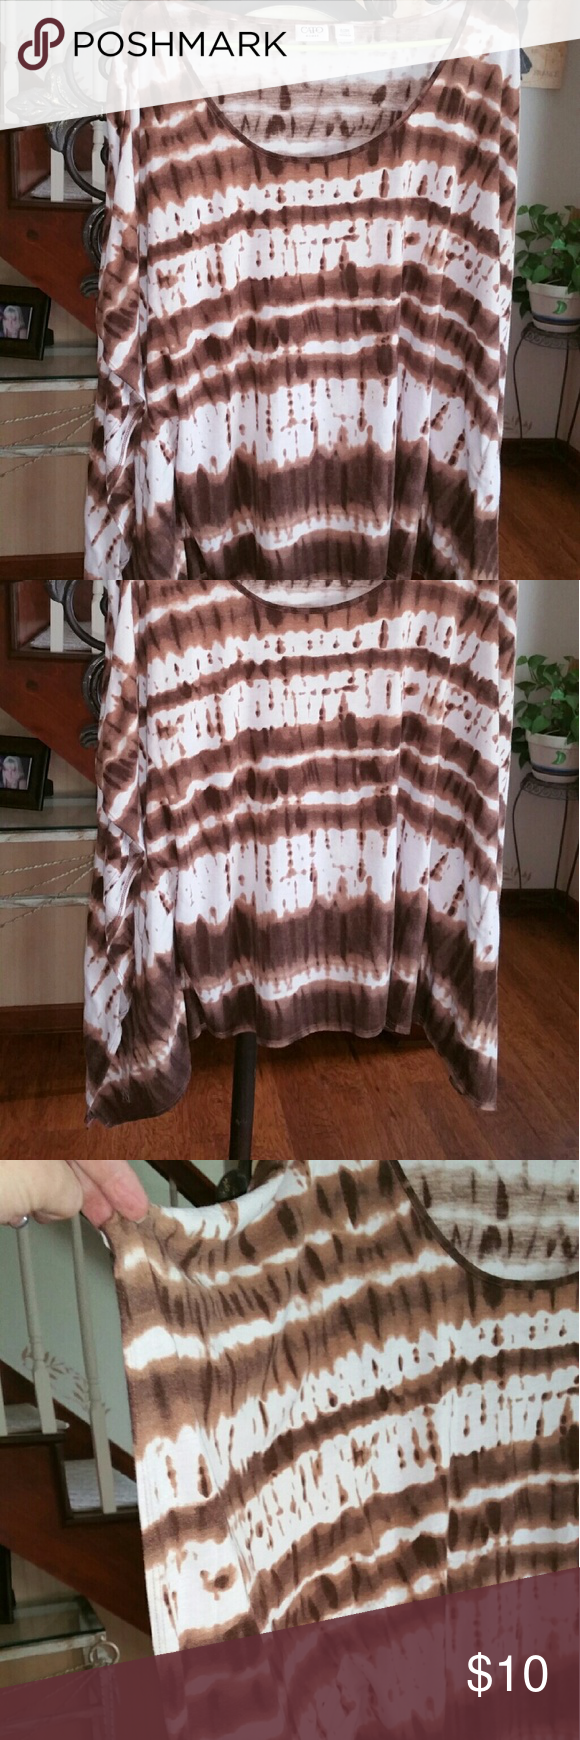 Cato tie dye shirt Cato tie dye shirt.  Excellent like new condition. Cato Tops Tees - Short Sleeve